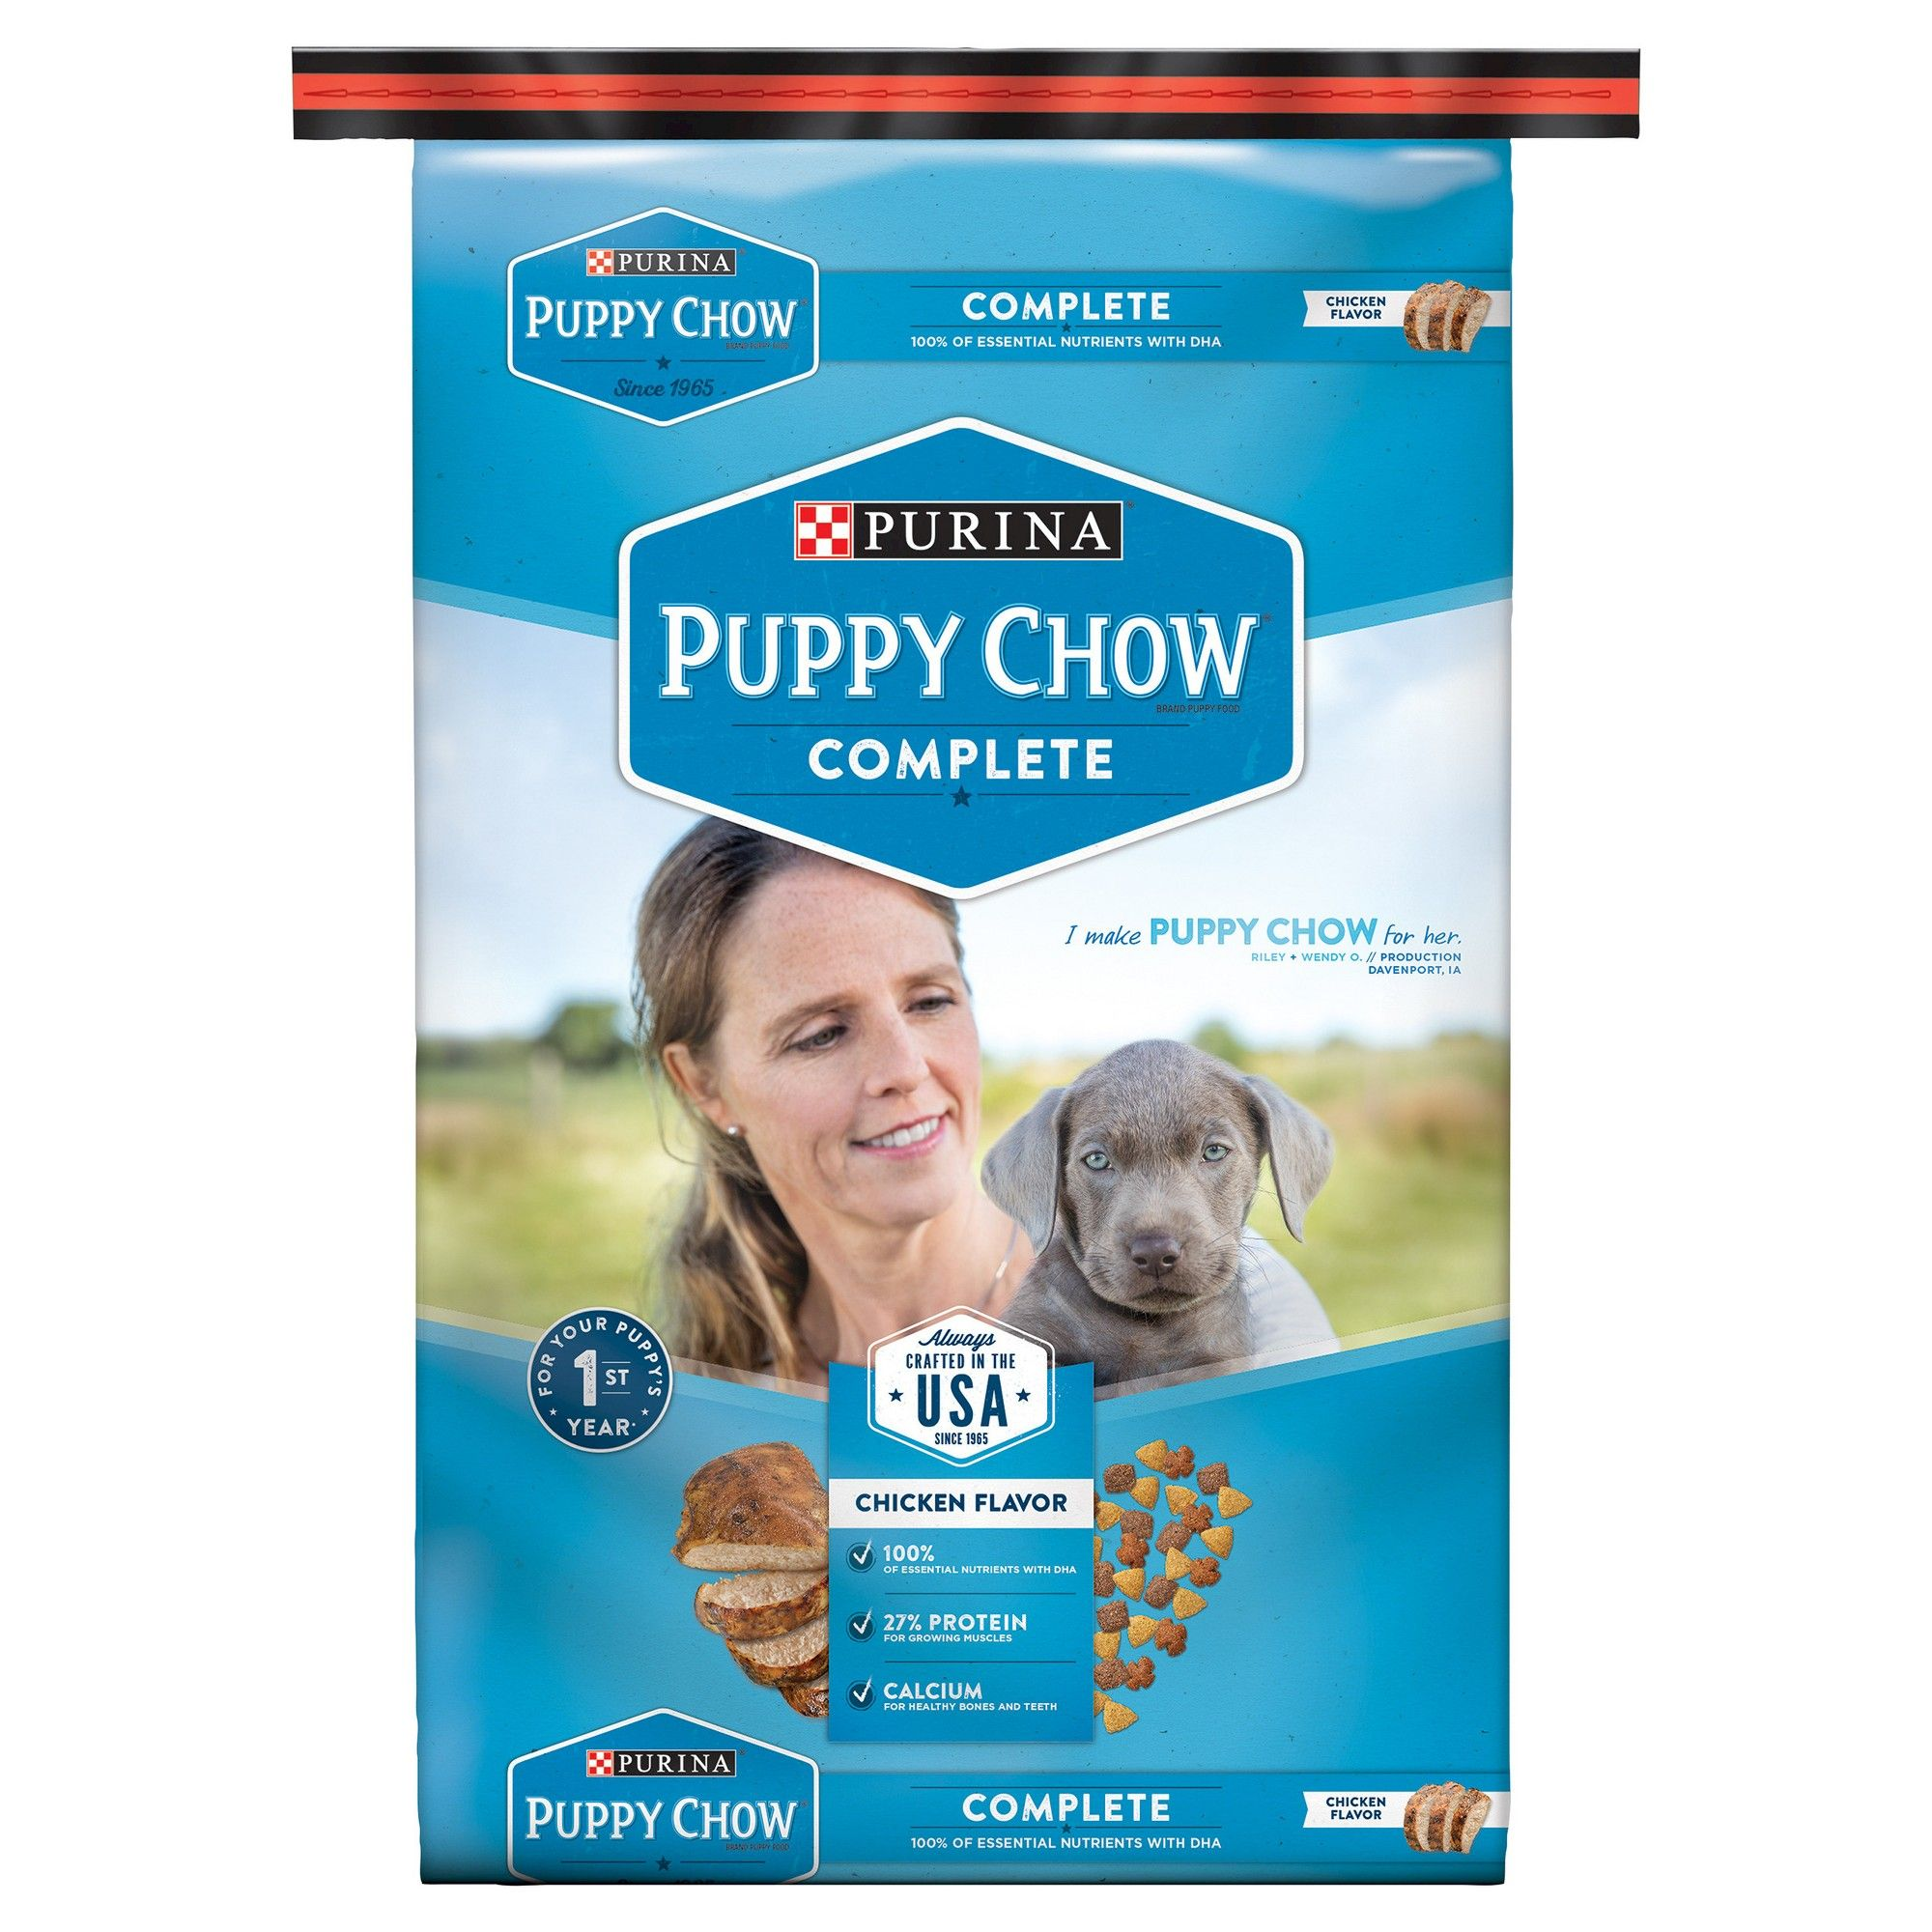 Purina Puppy Chow Complete Dry Dog Food 16 5lbs Purina Puppy